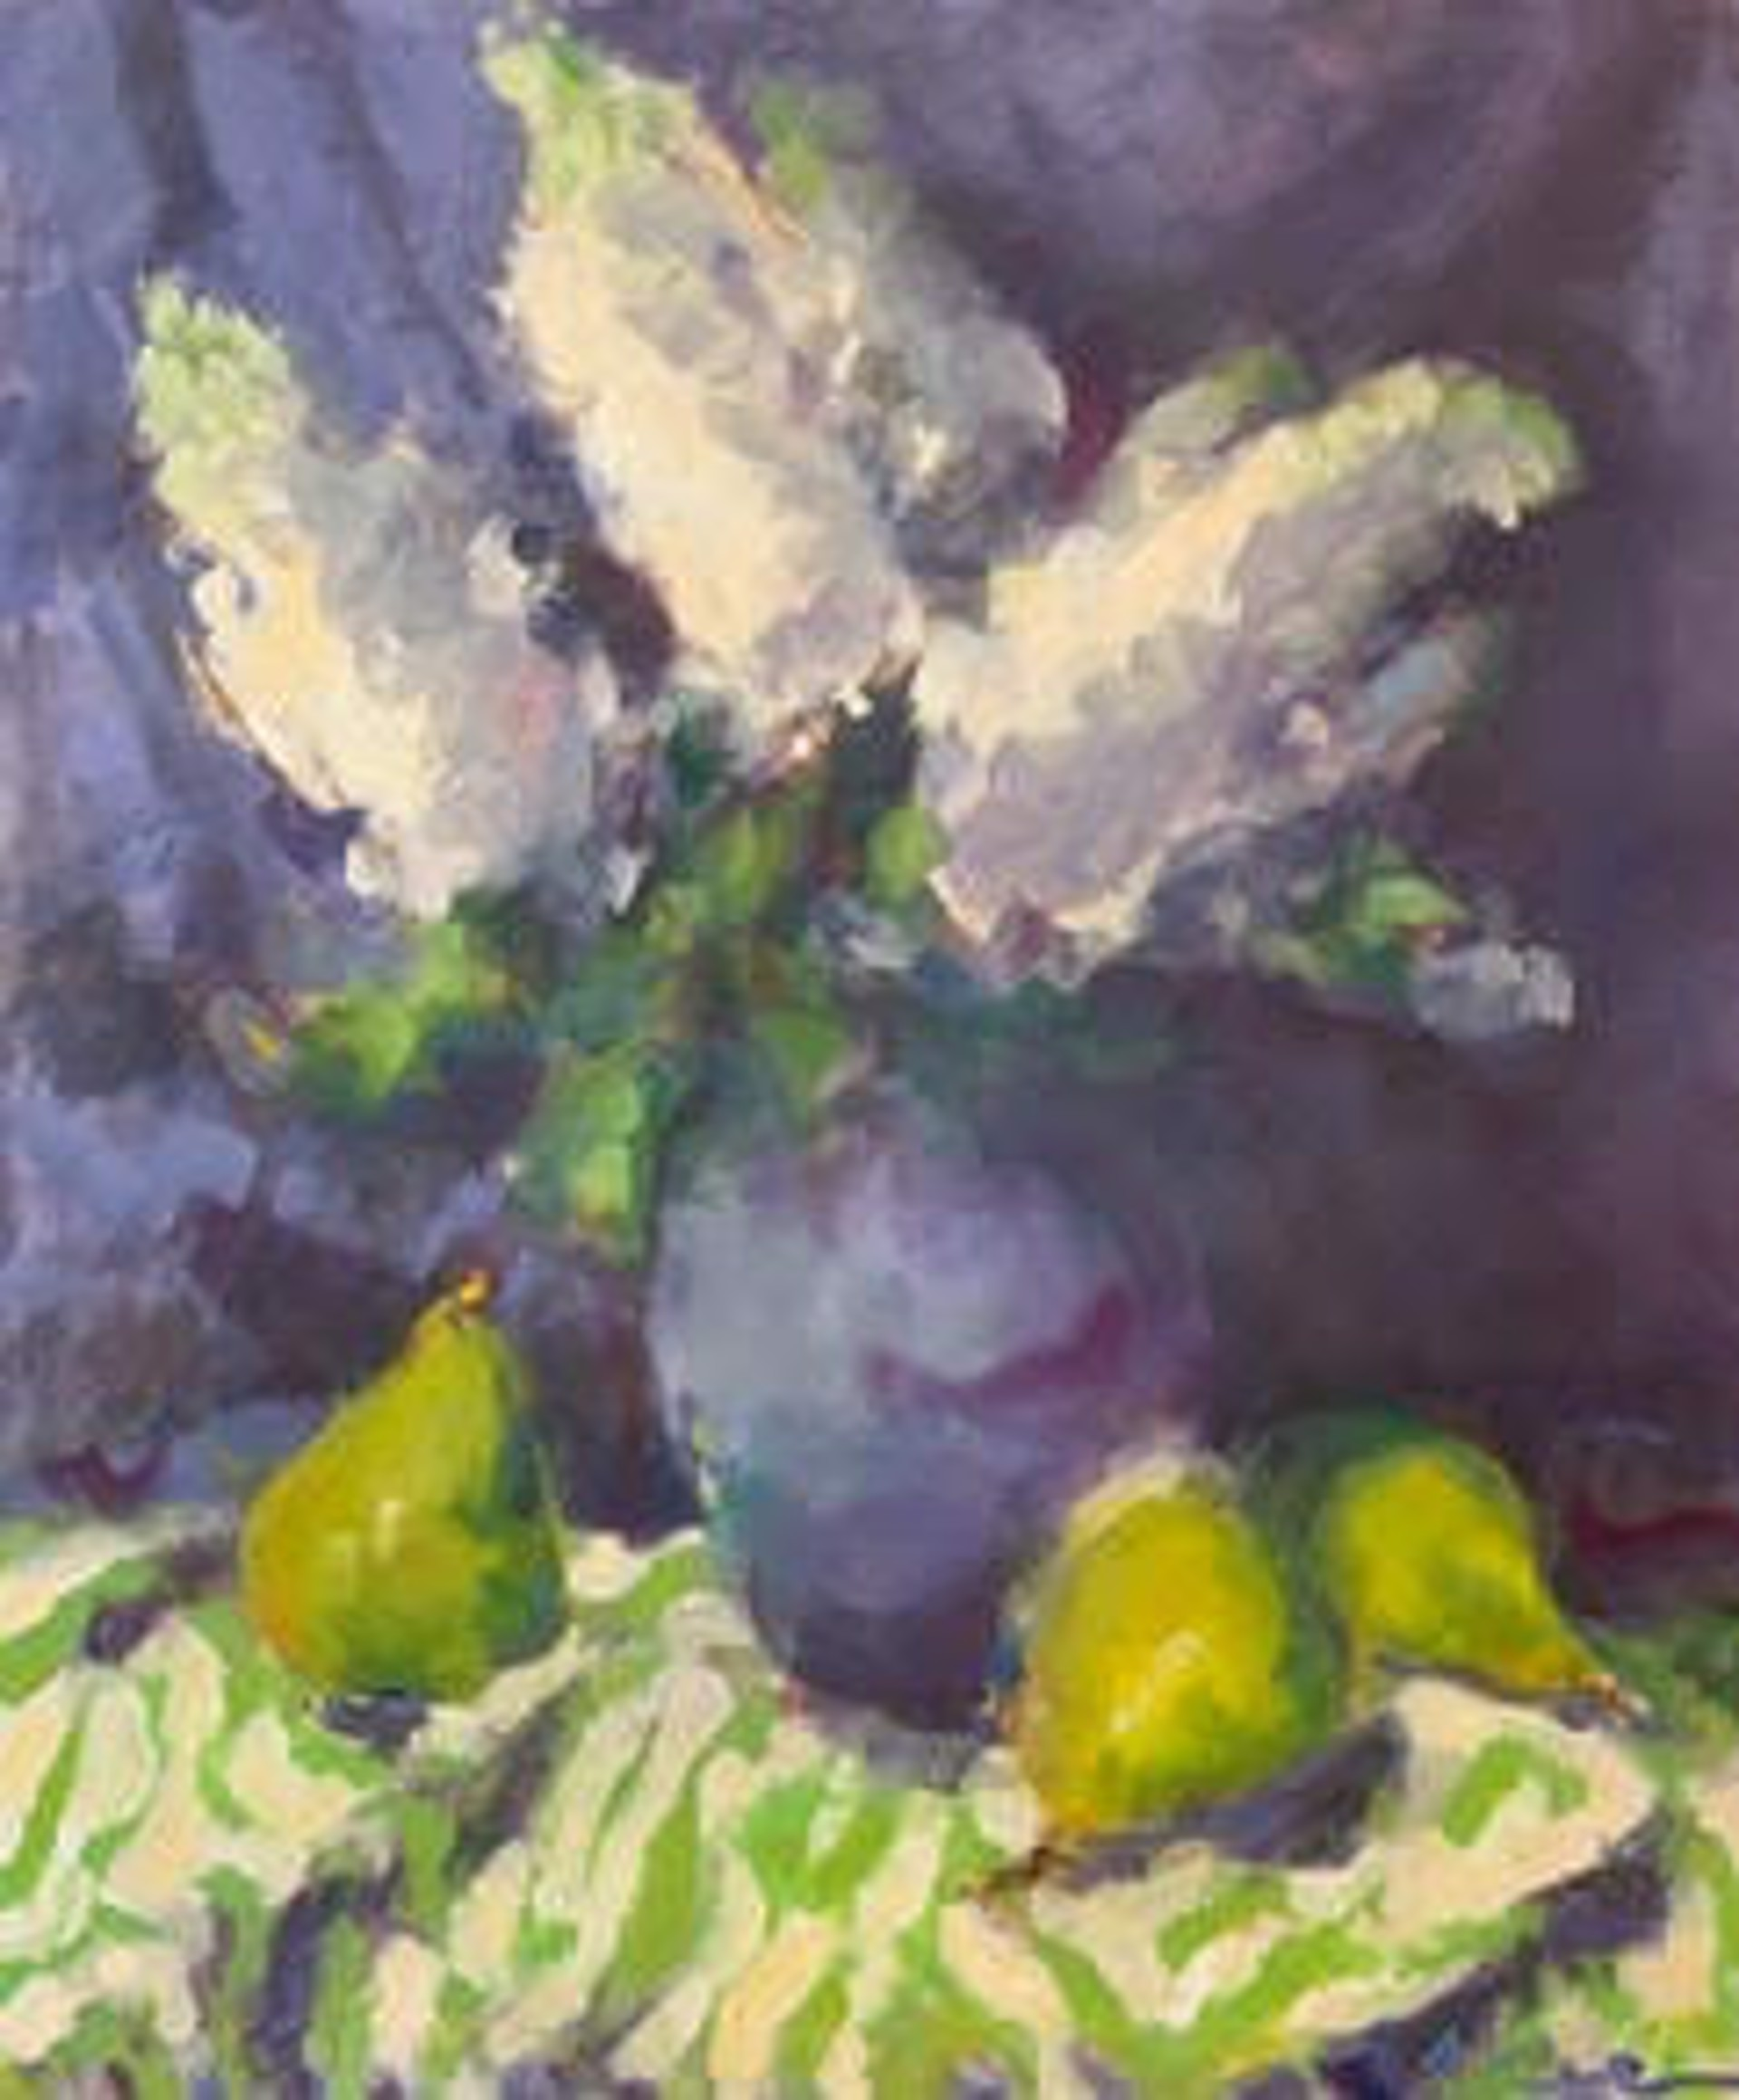 Hydrangeas, Pears and Green by Angela Powers